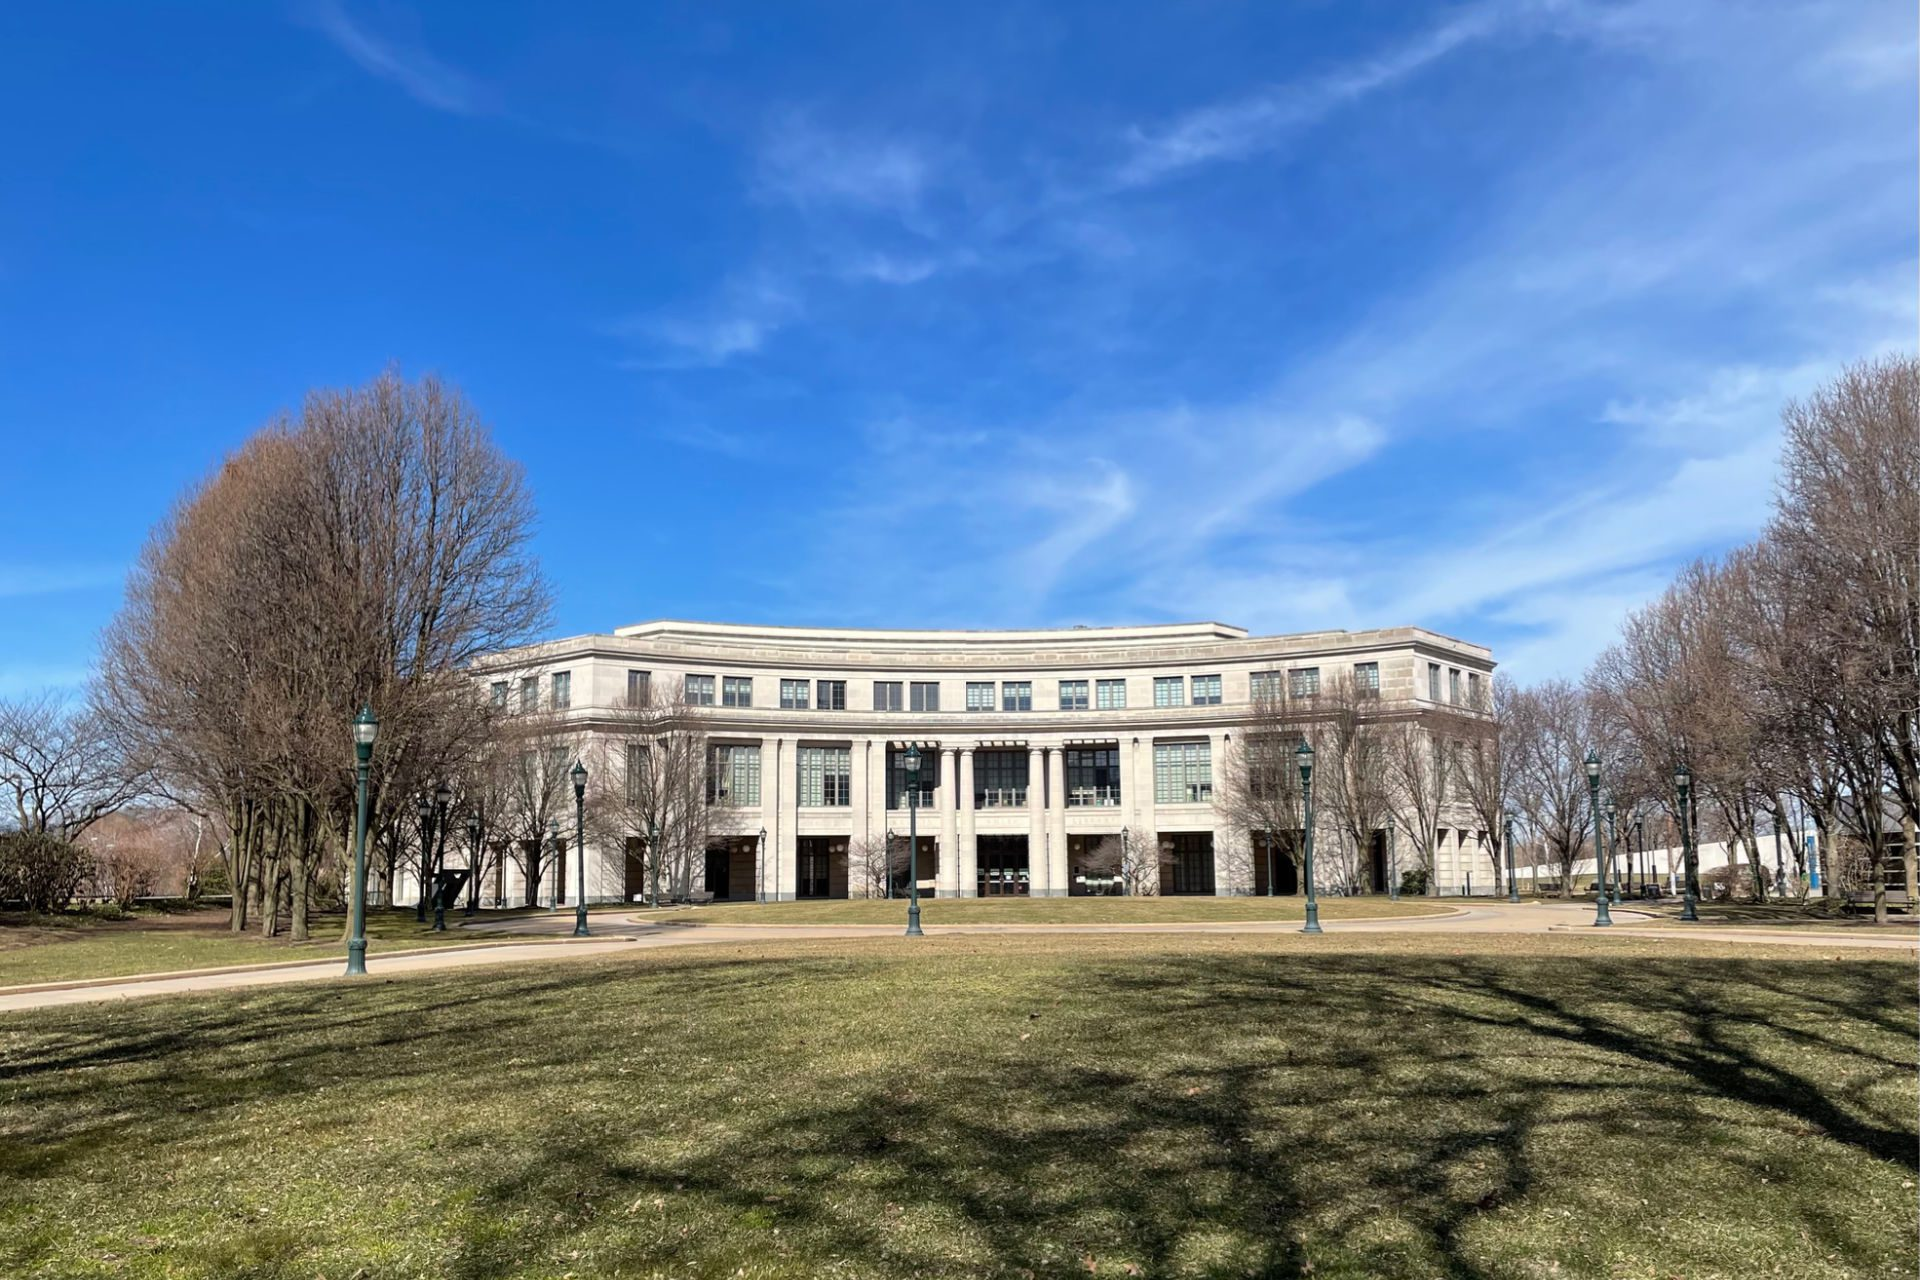 How to Visit the Case Western Reserve University Campus in Cleveland